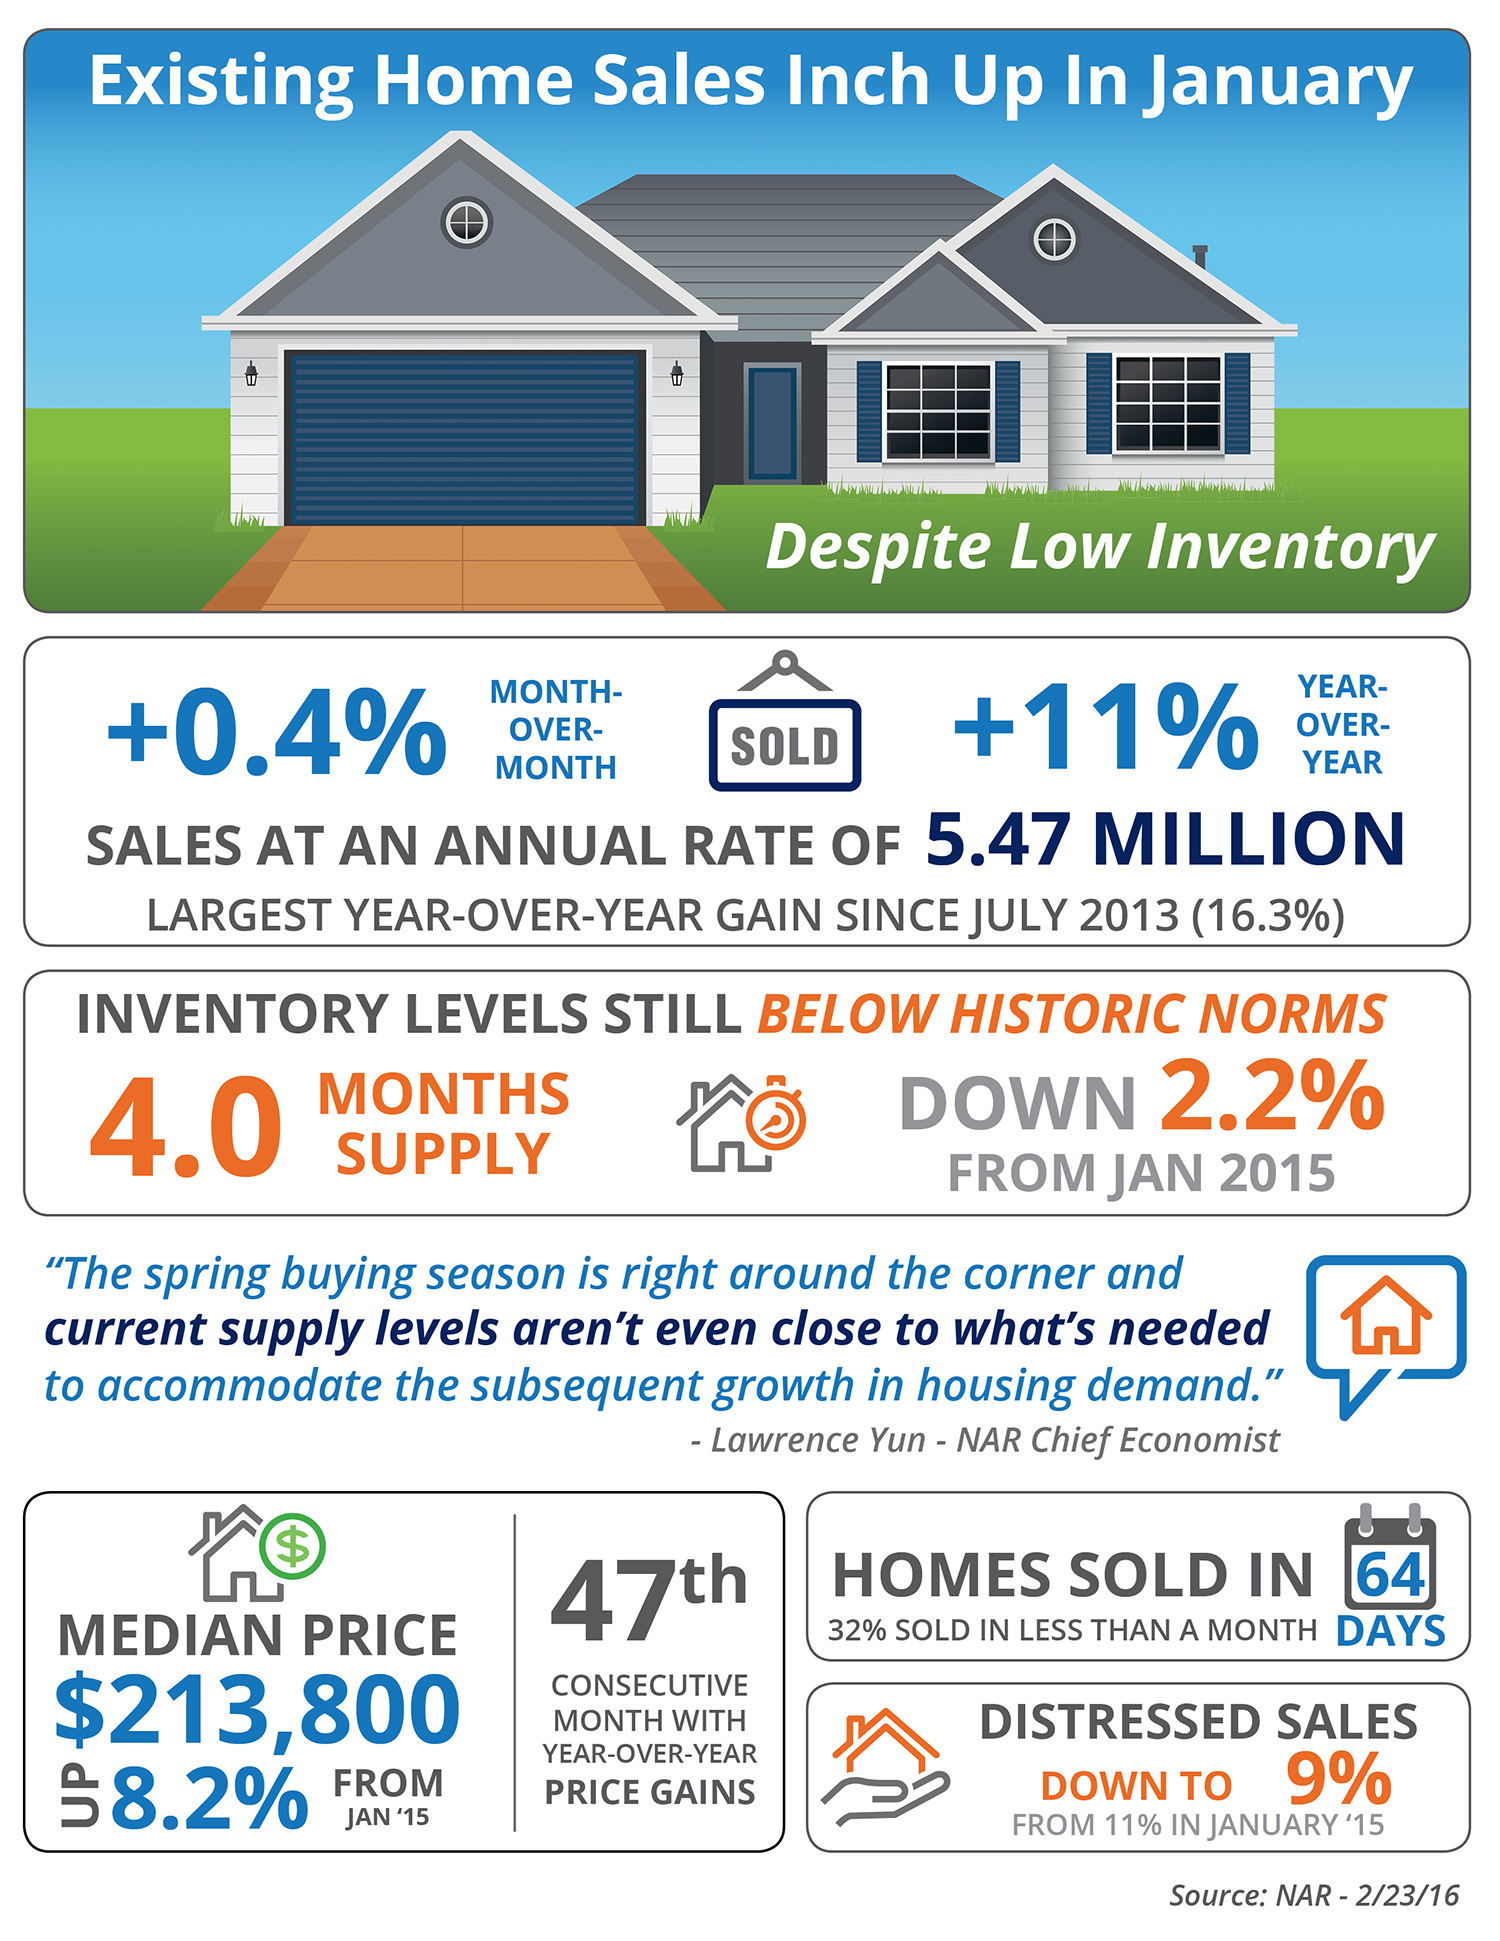 Exising Home Sales Inch Up In January [INFOGRAPHIC] | Simplifying The Market